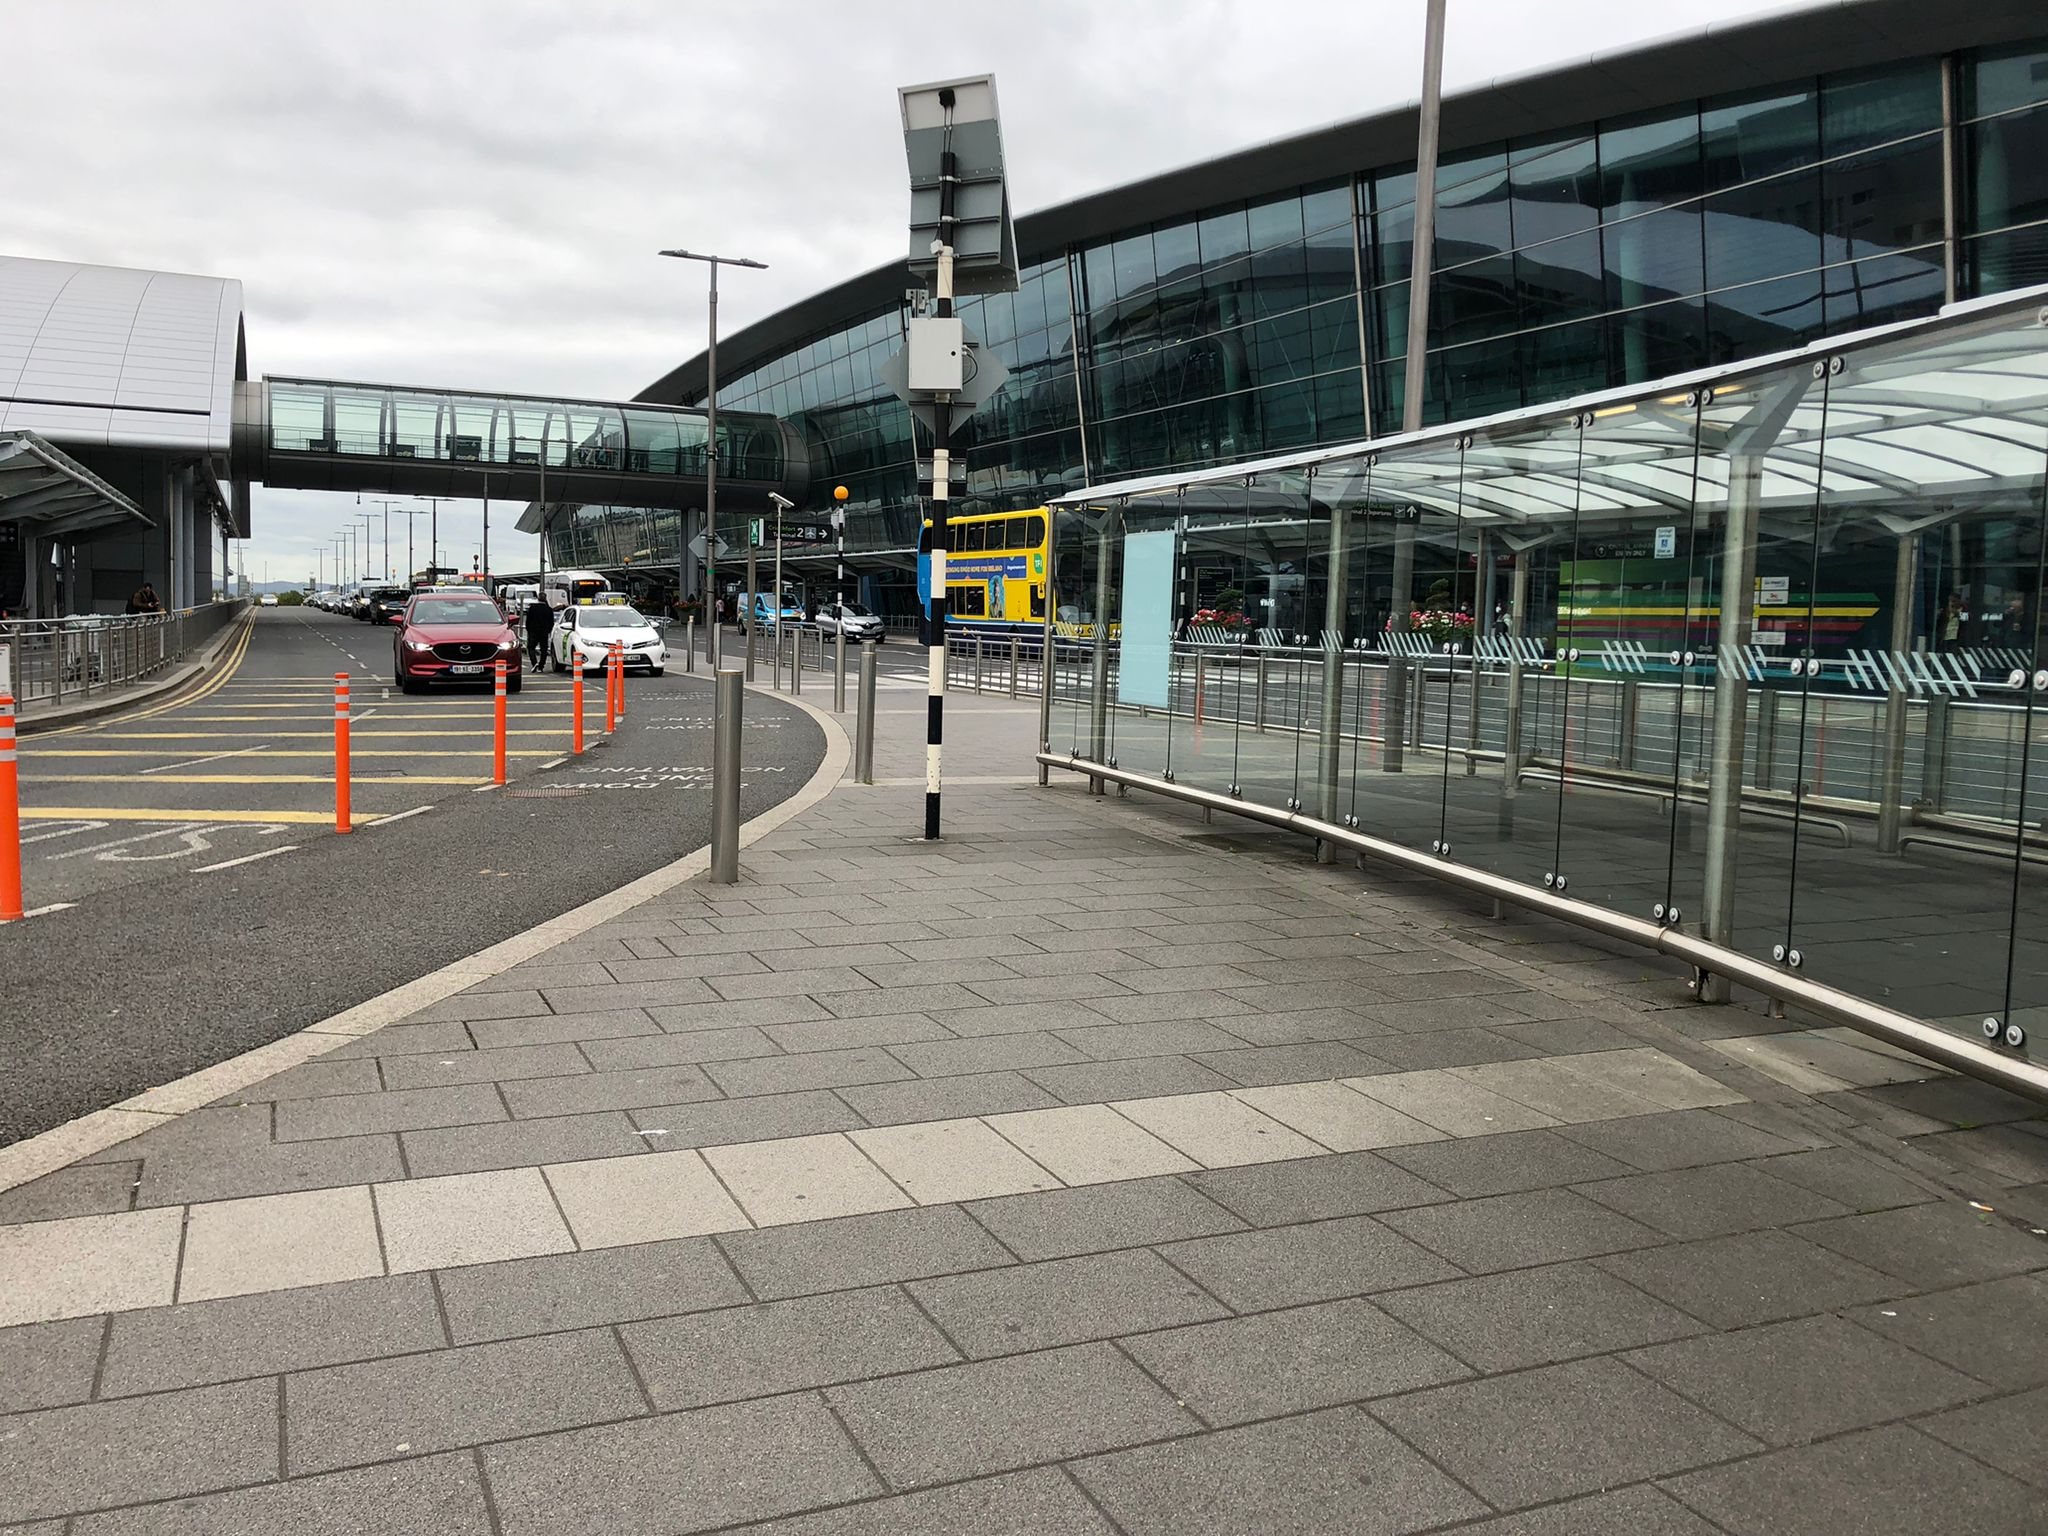 Taxis and a bus are seen at Dublin Airport in October 2021